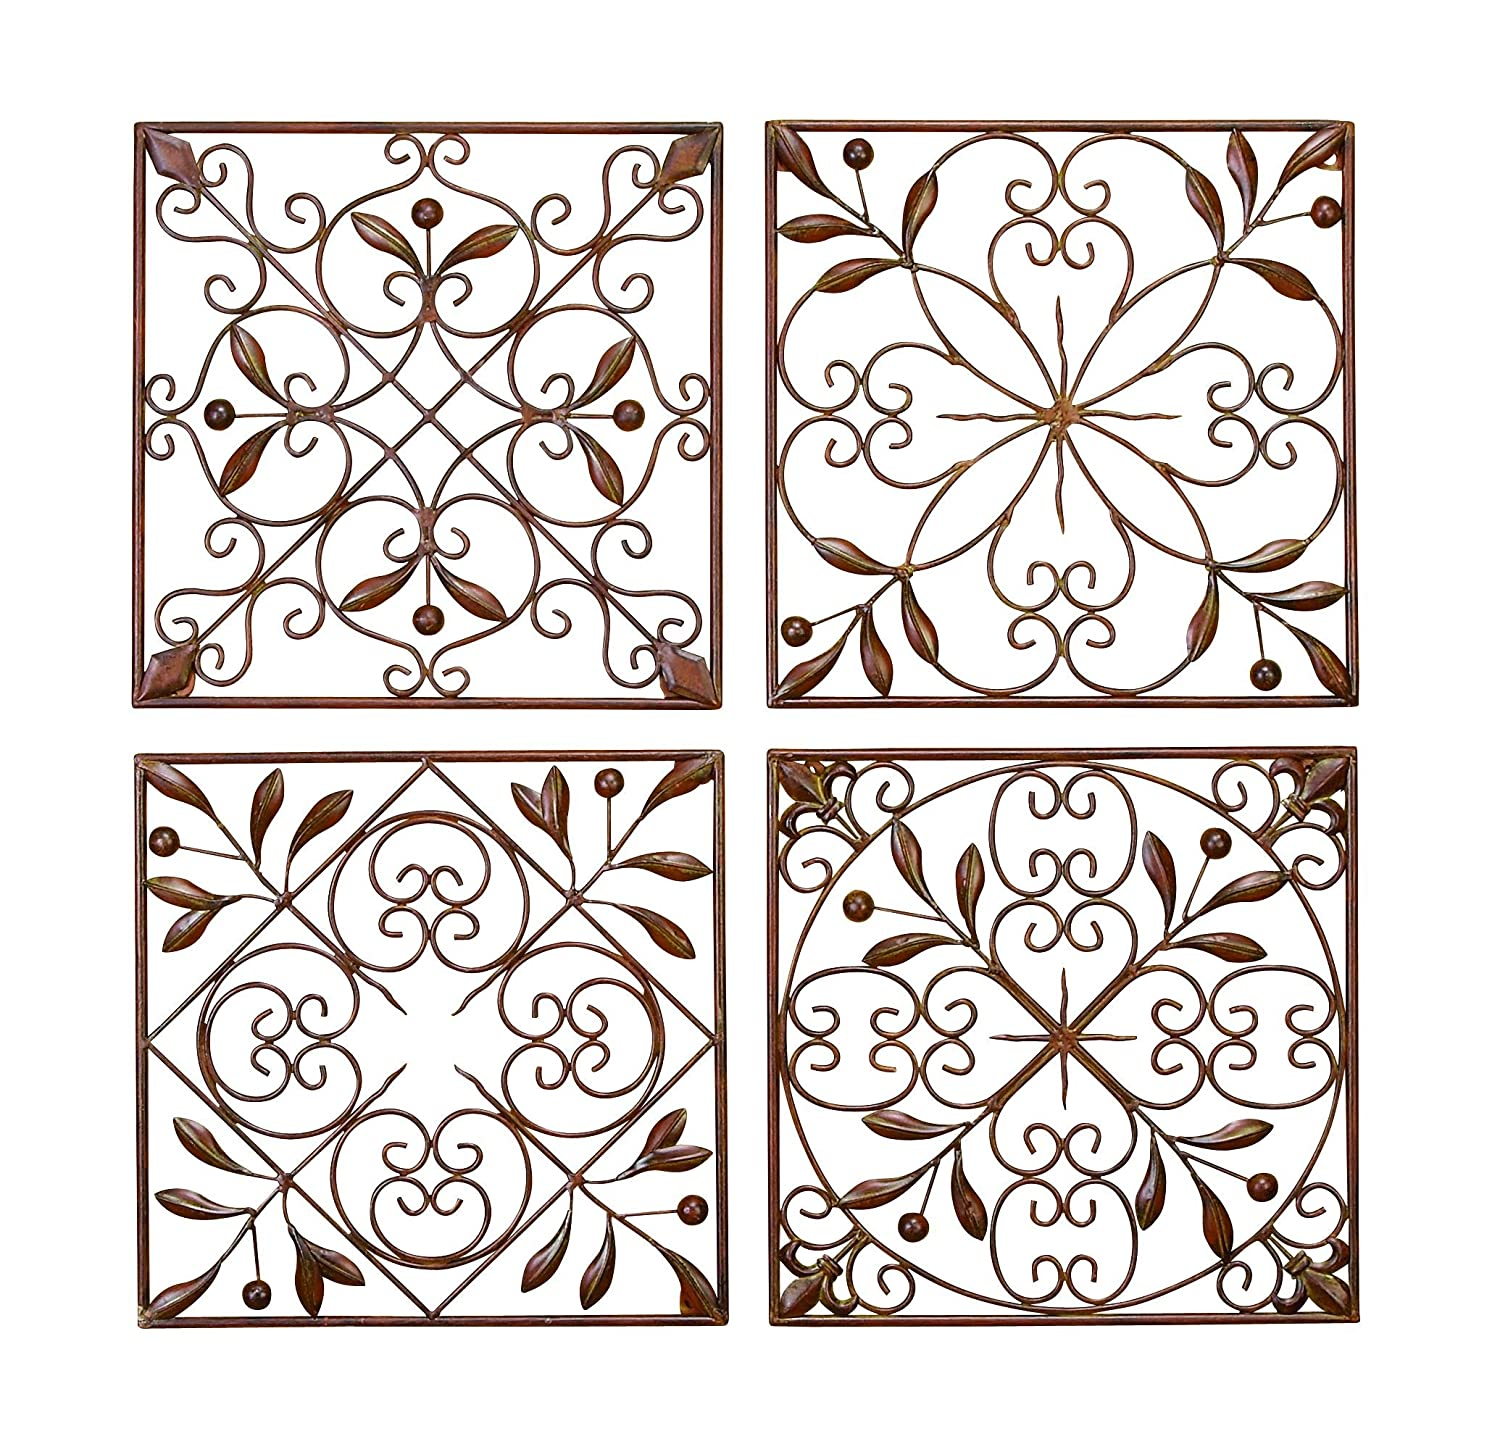 Amazon.com: Deco 79 50035 Metal Wall Decor Set of 4: Home & Kitchen